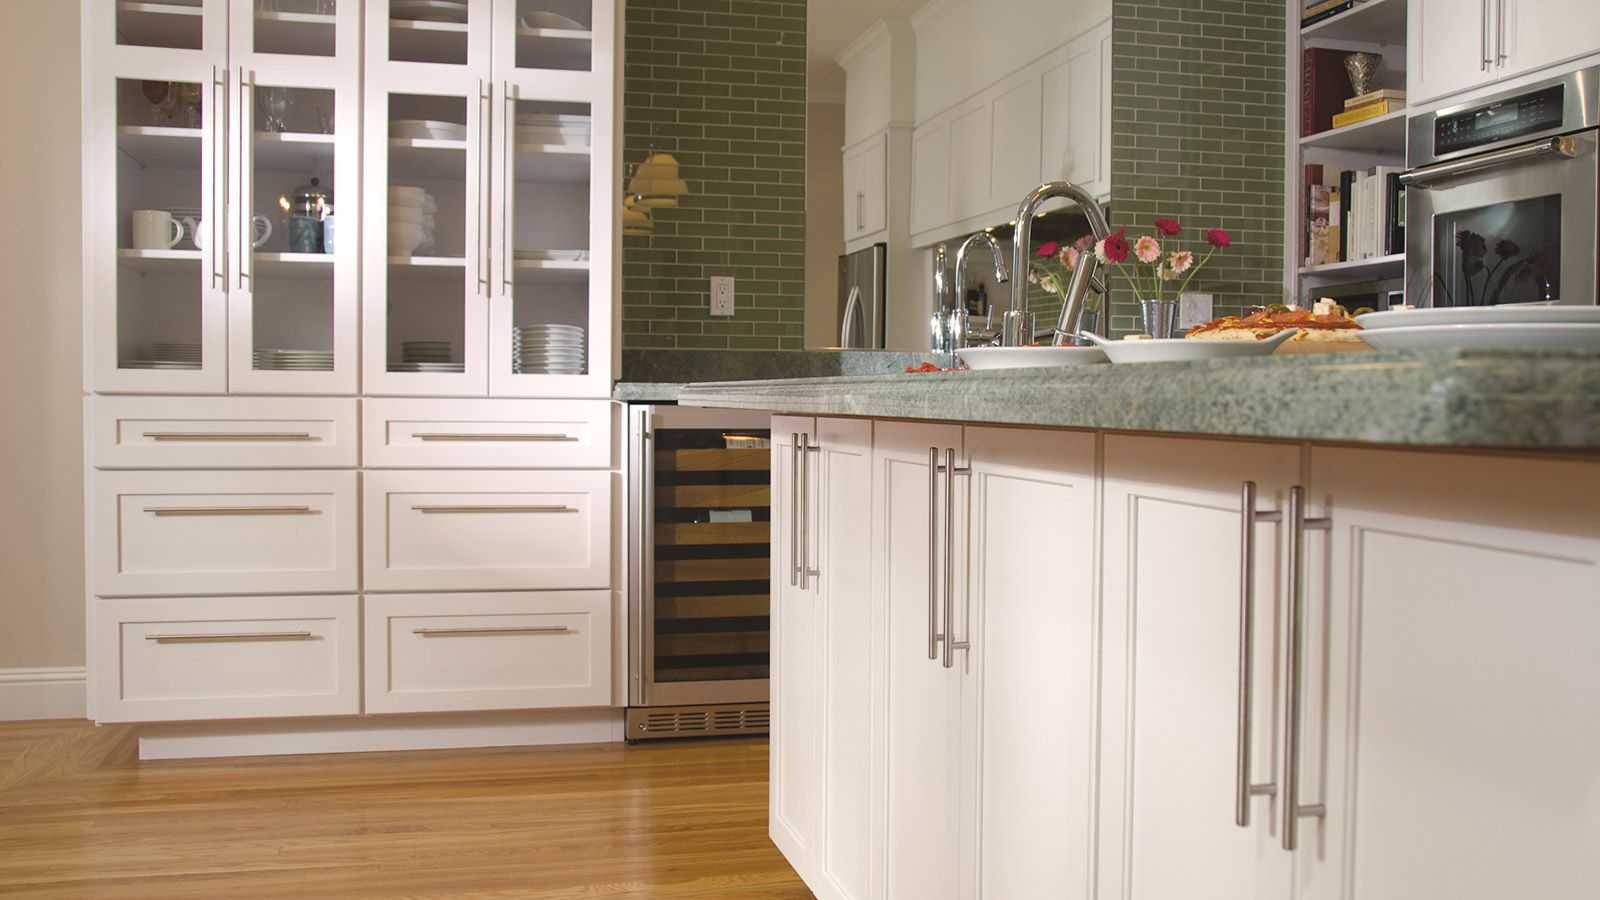 White Shakerstyle Kitchencabinets From Omegacabinetry At Gnhlumber Kitchen Design Centre Kitchen Remodel Kitchen Design